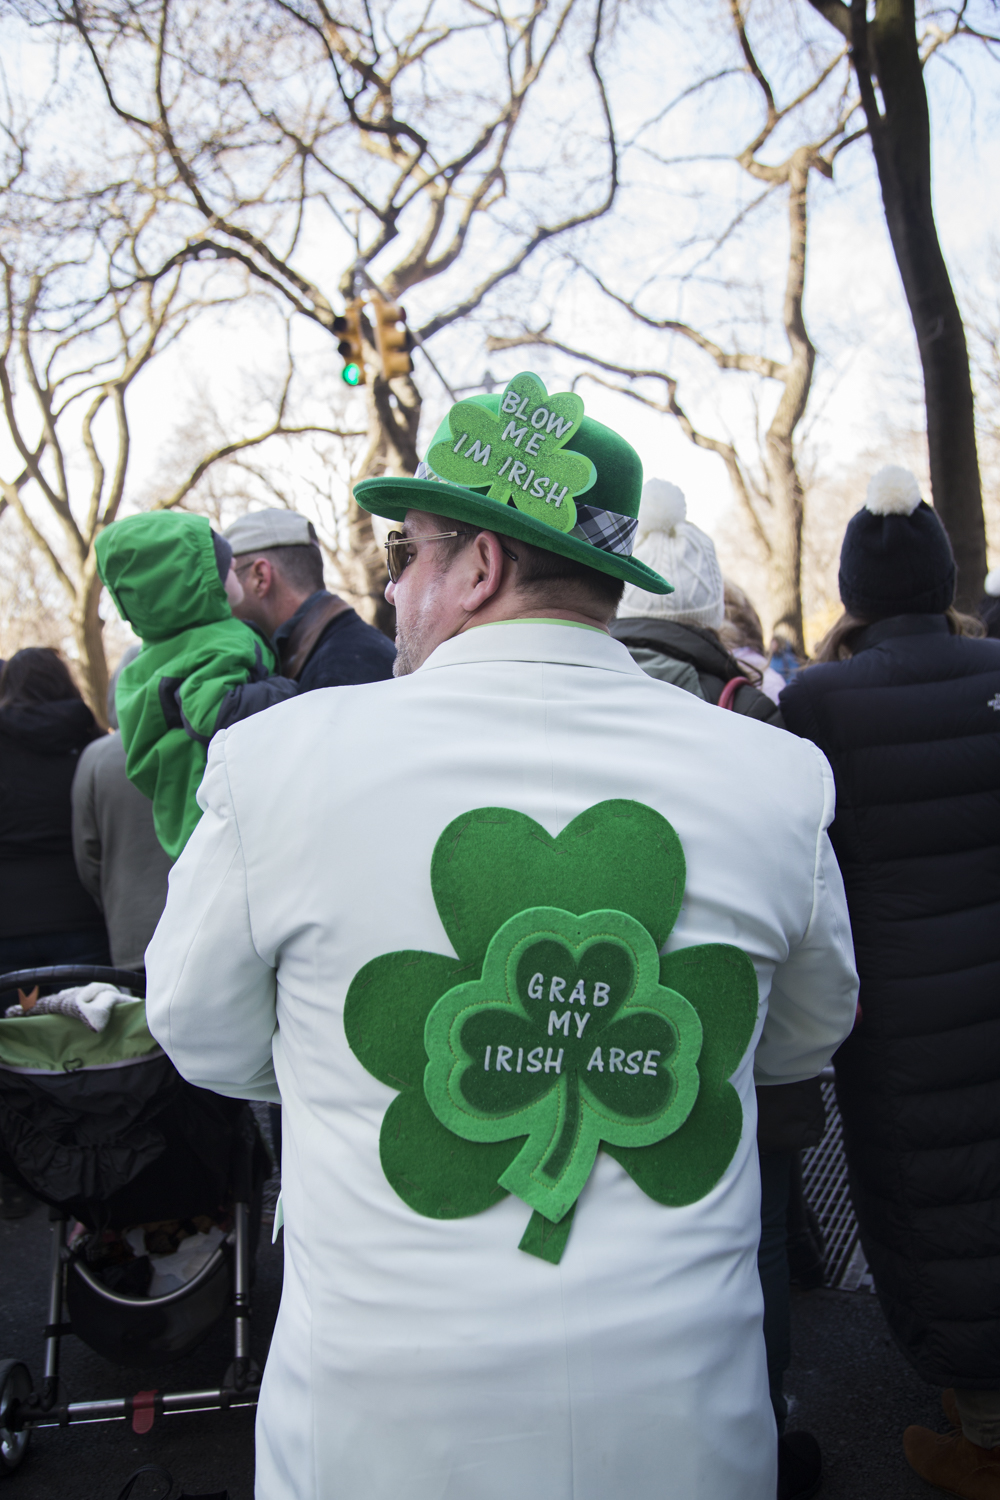 Scenes from the 2018 St. Patrick's Day Parade in Manhattan. (Staten Island Advance/Shira Stoll)